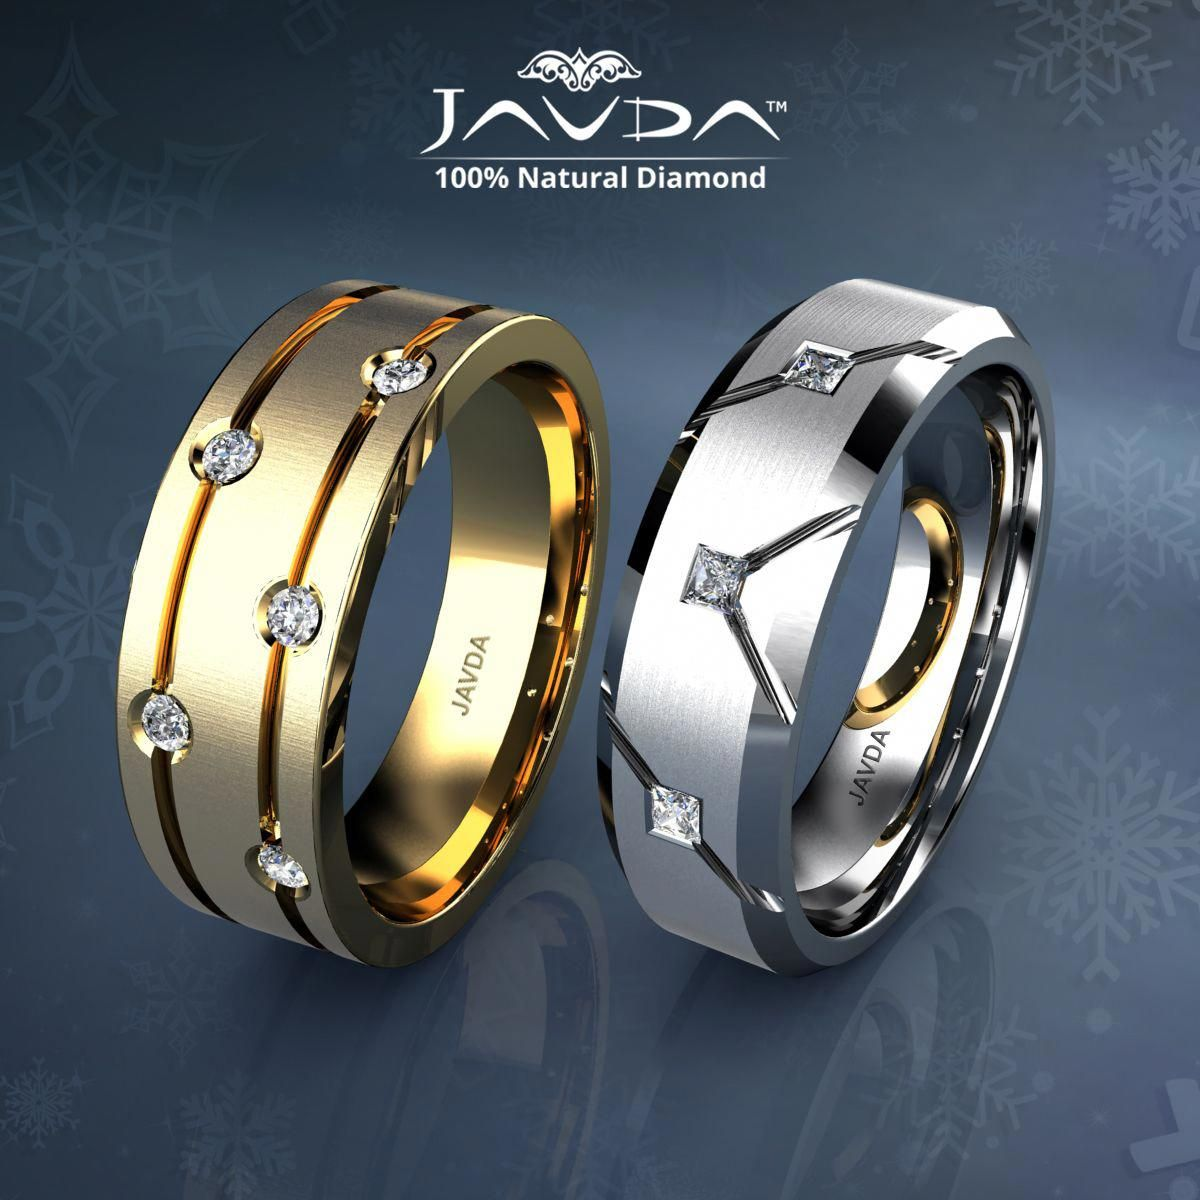 WOW solitaire wedding rings are Picture